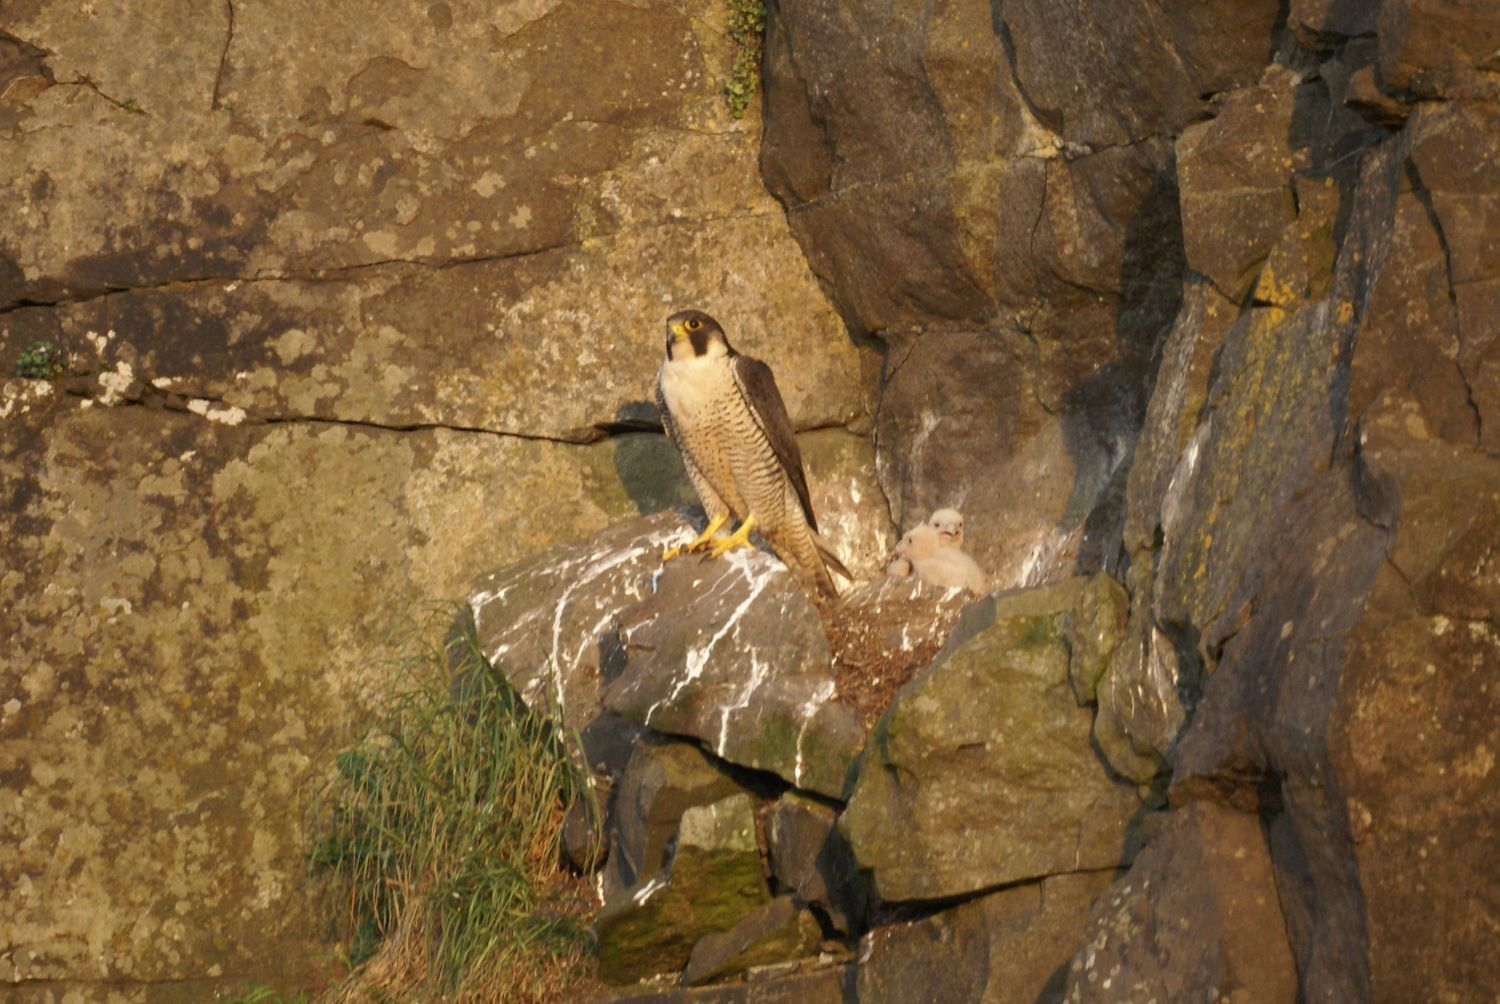 Peregrine on nest (c) Marc Ruddock